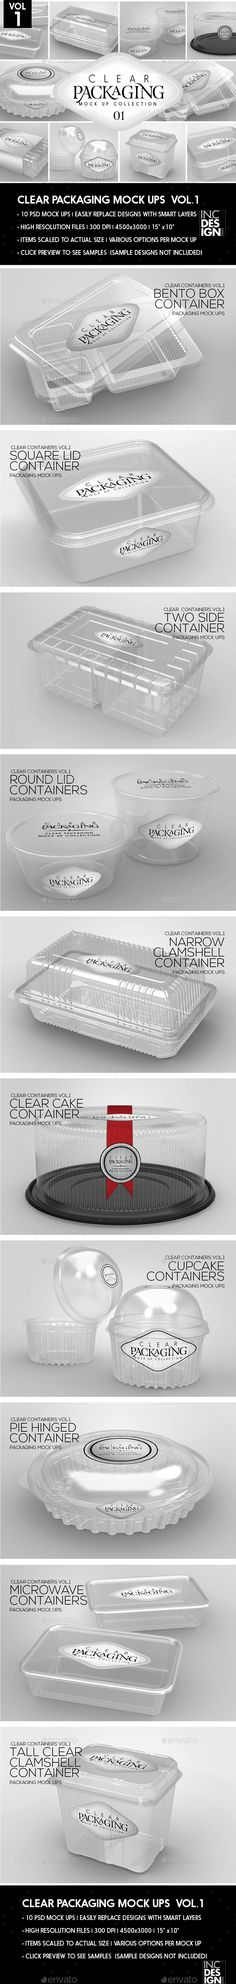 Clear Packaging MockUps 01 by incybautista Volume 1: Clear Plastic Food Containers Packaging Mock Up Collection10 Plastic Container Mock Ups in various shapes and sizes-per